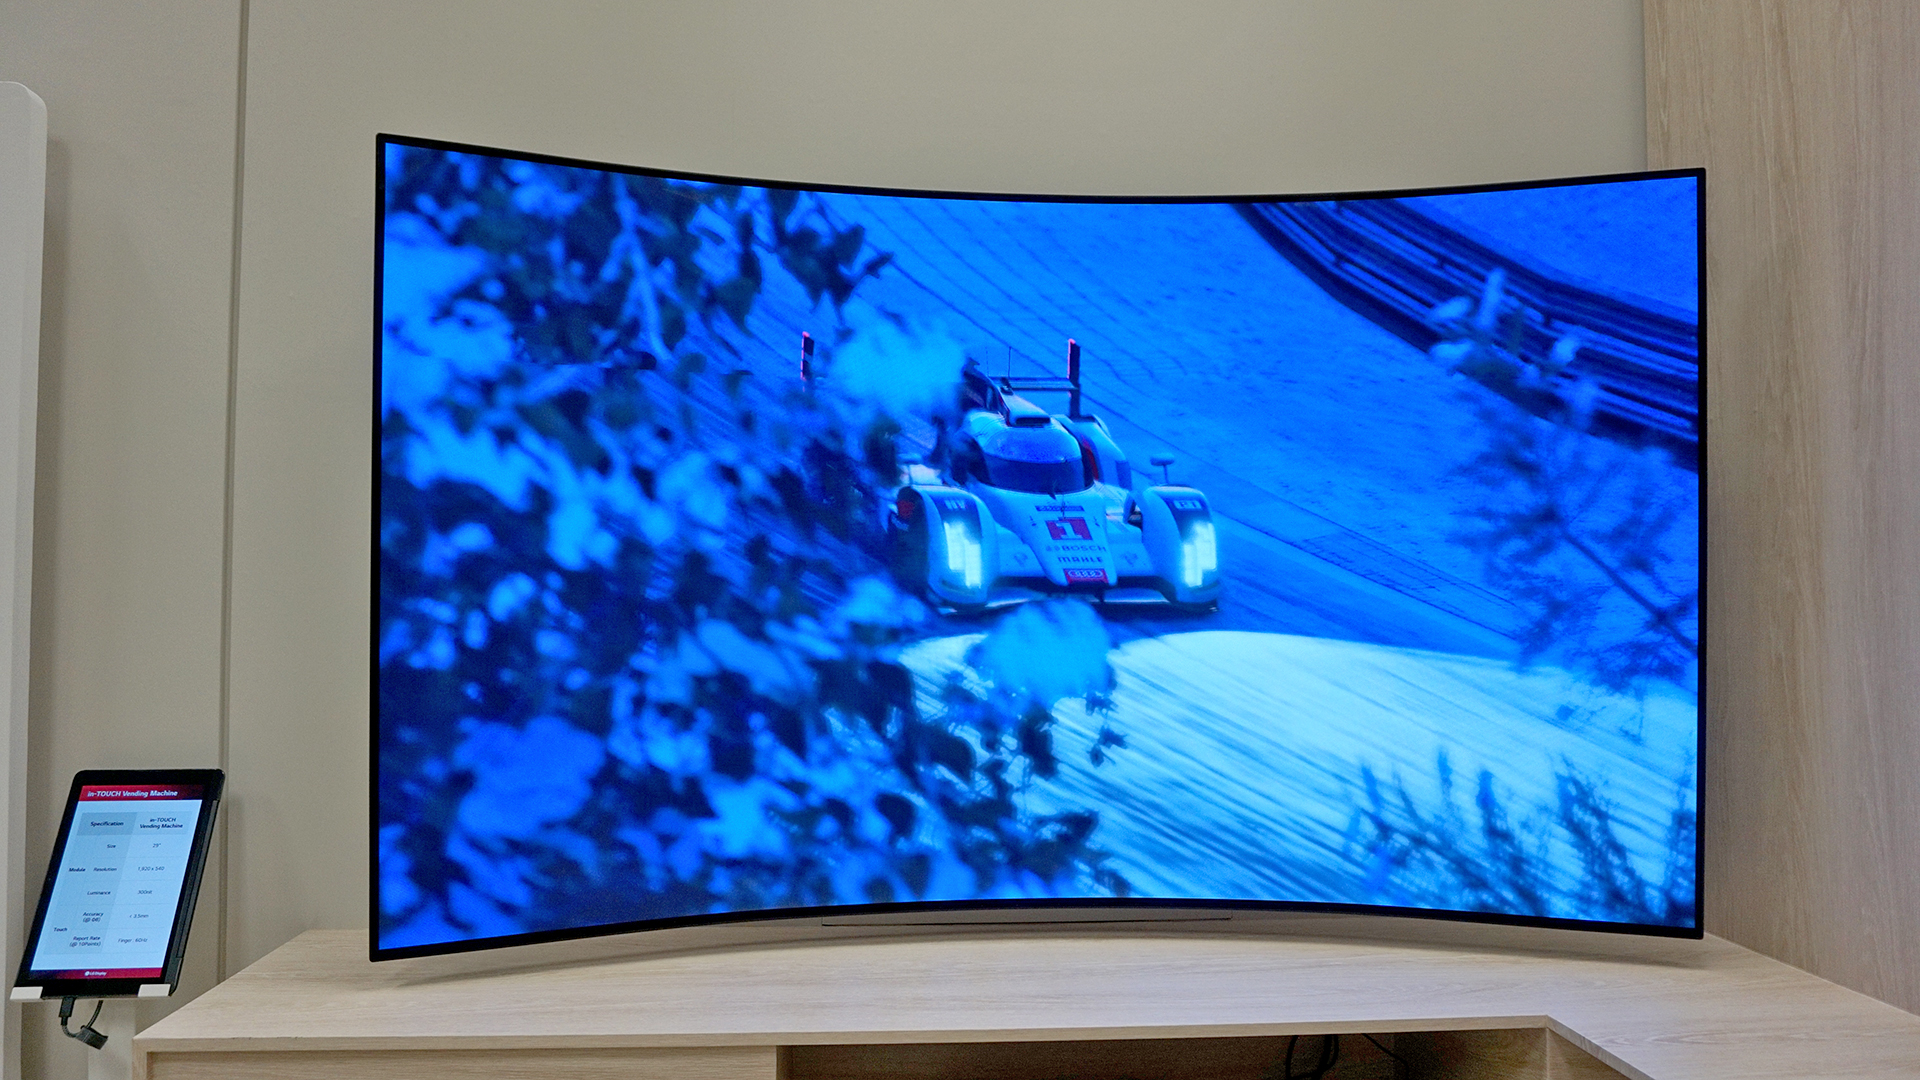 LG shows TVs that can be bent at the push of a button